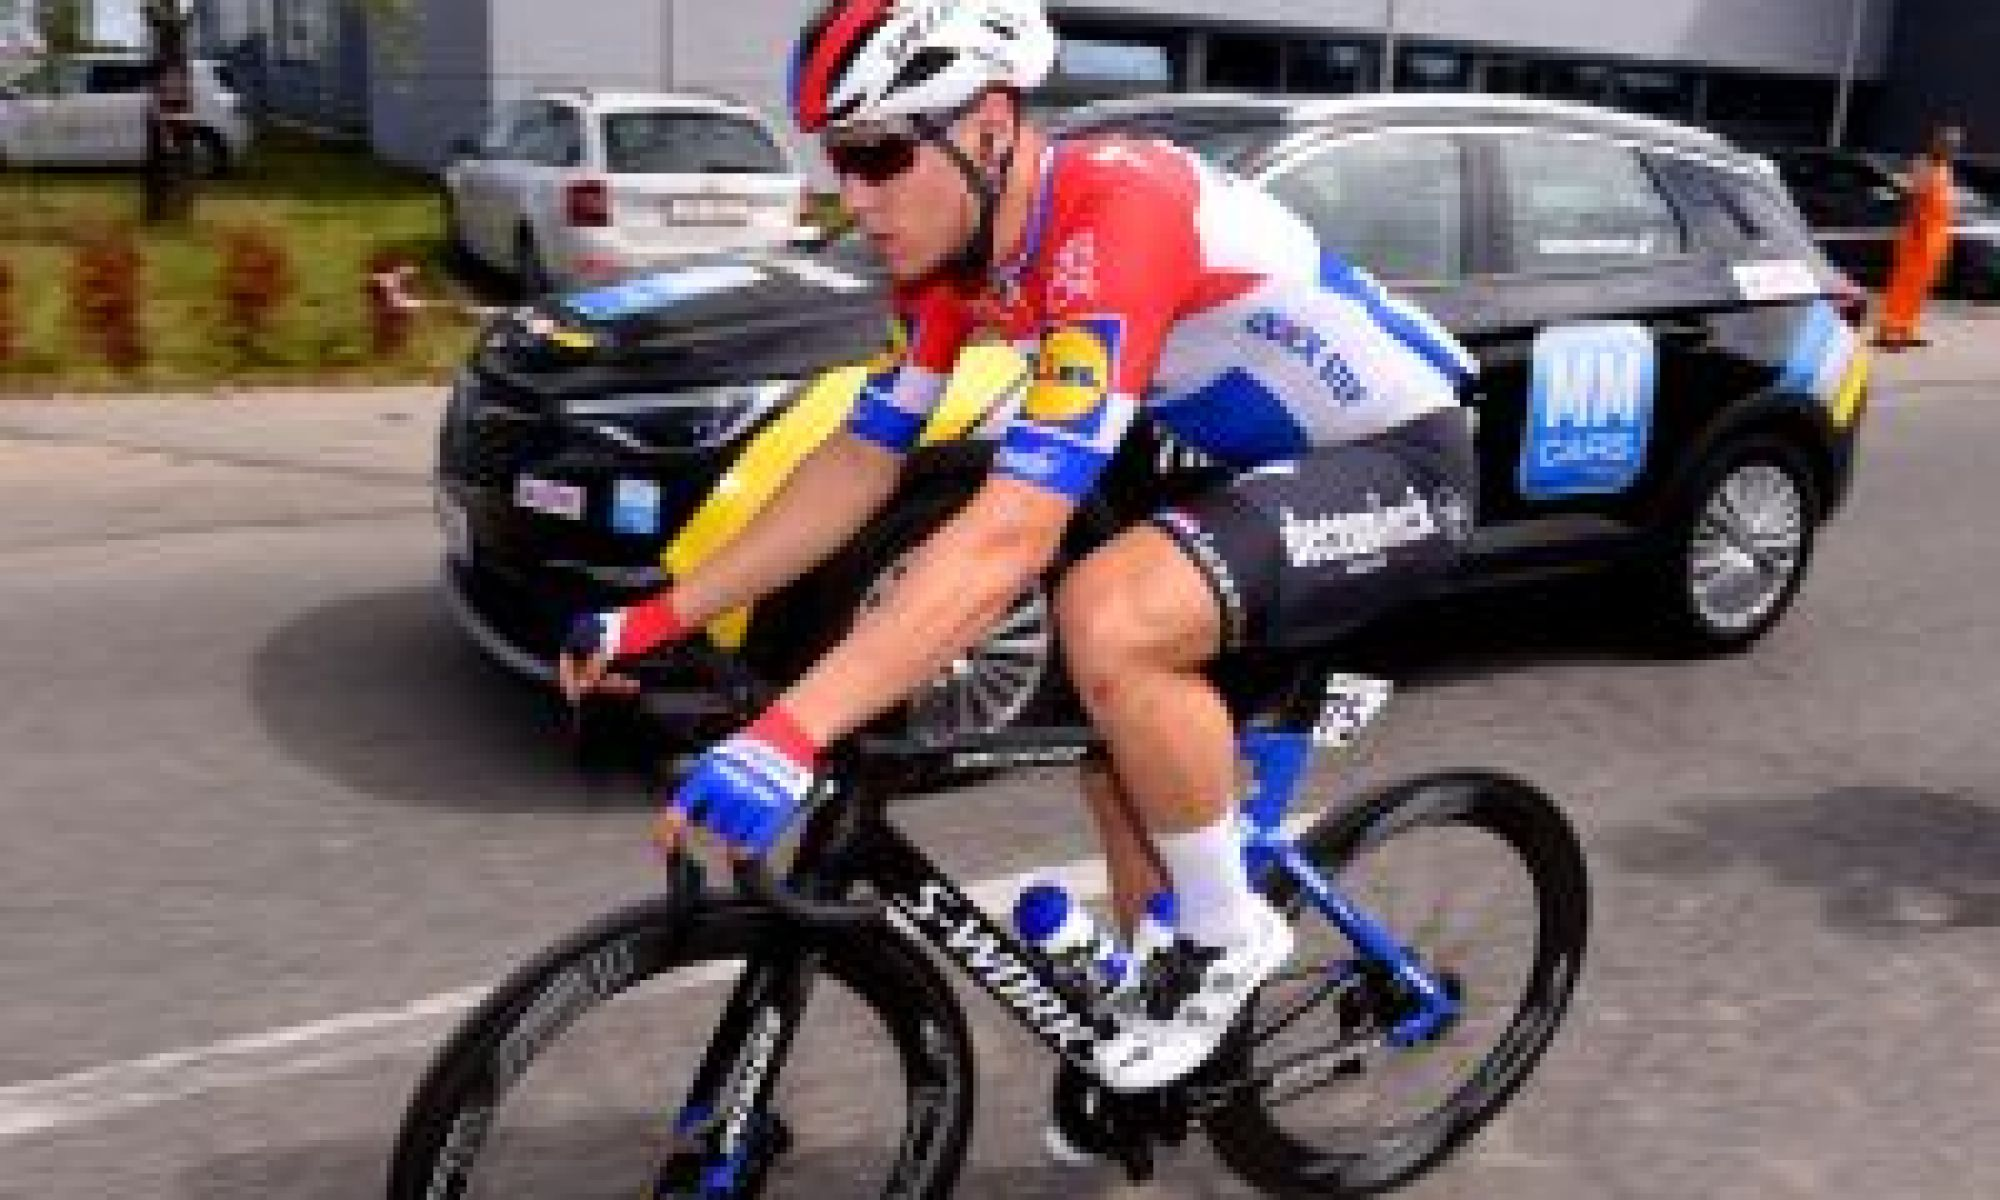 Fabio Jakobsen successfully woken up from induced coma